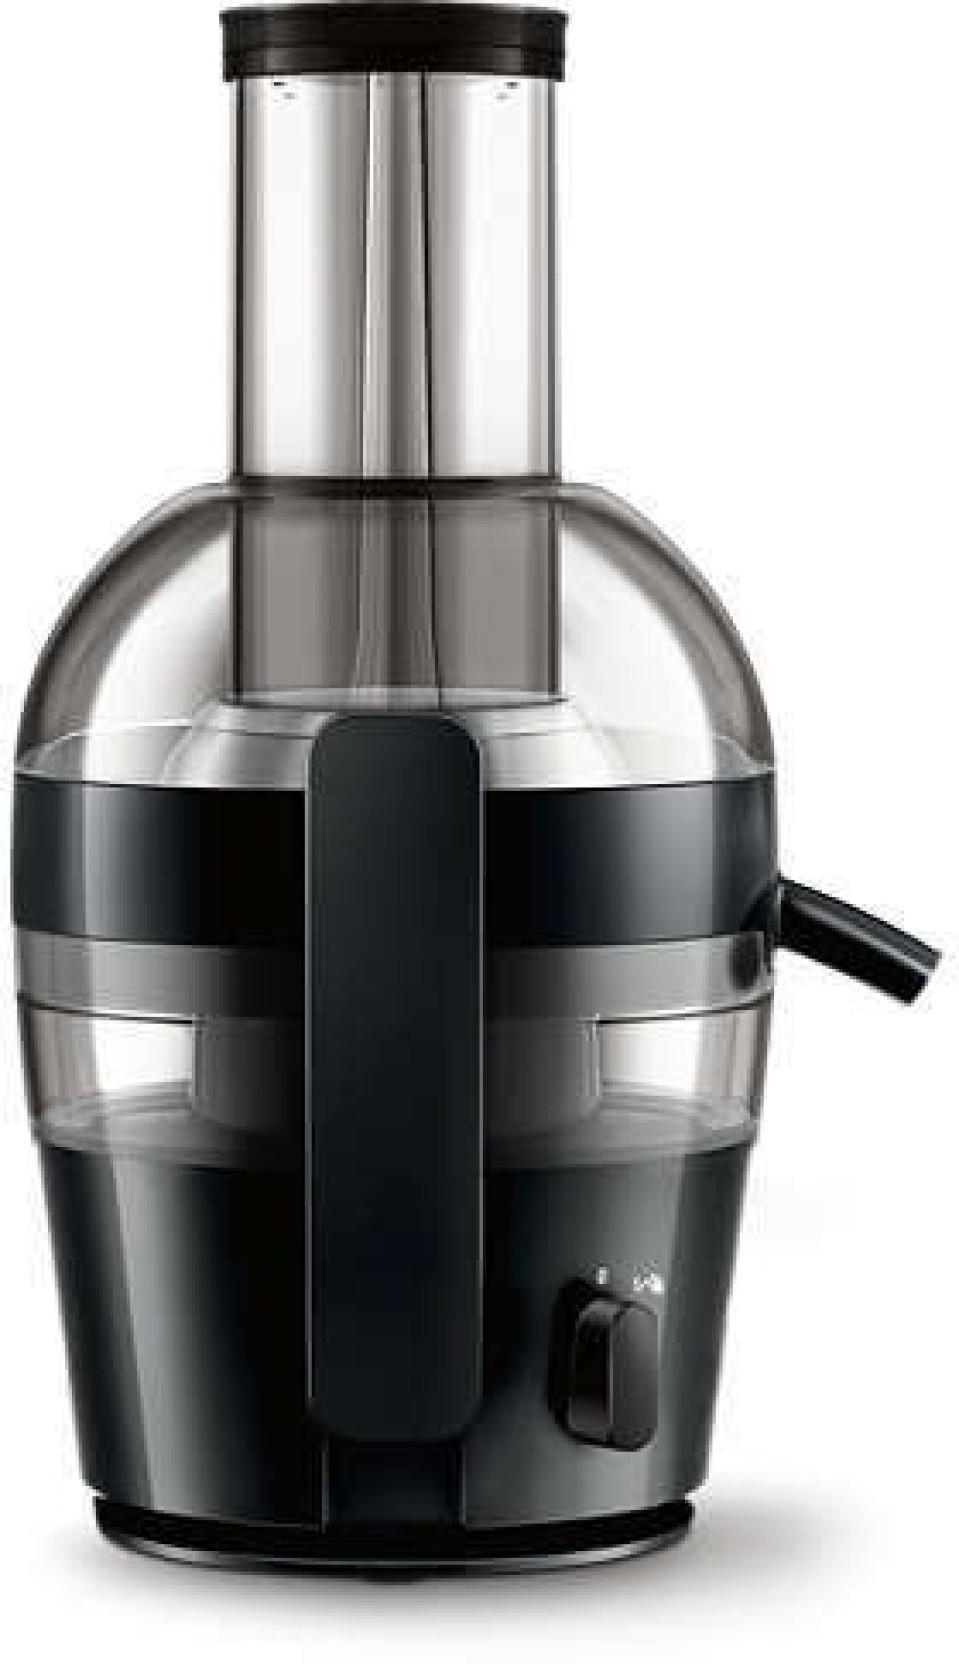 Philips HR1855/70 700 W Juicer Price in India - Buy Philips HR1855/70 700 W Juicer Online at ...